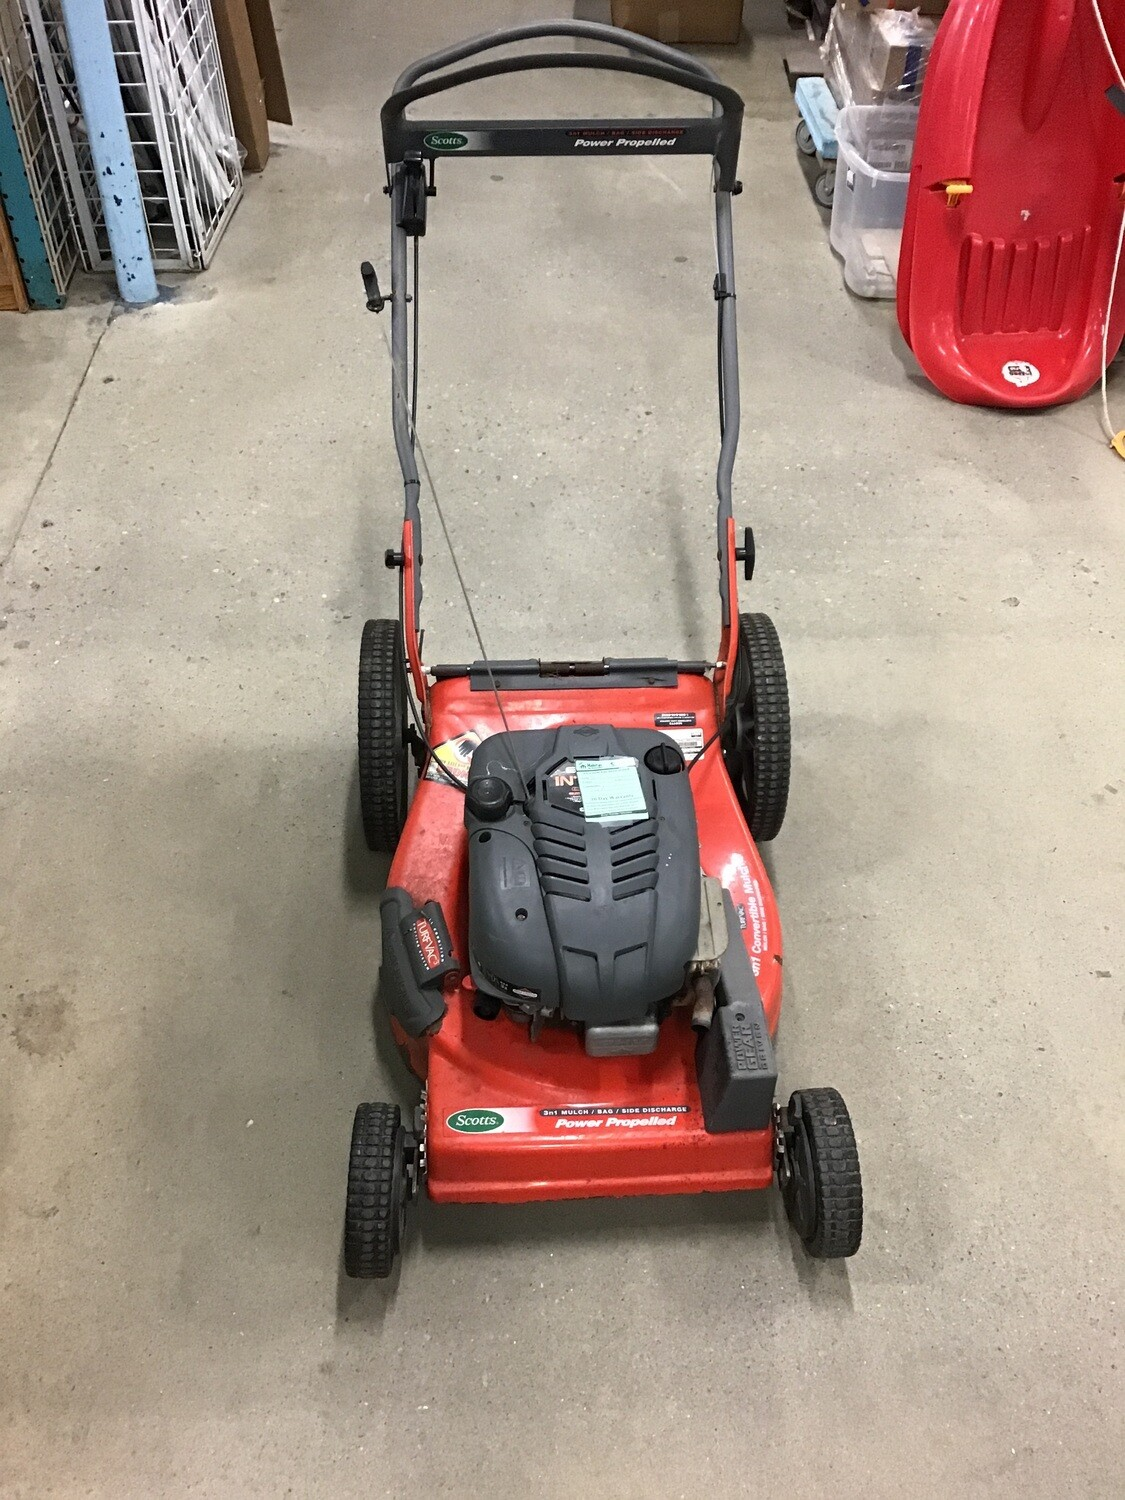 Scott's Power Propelled Mower